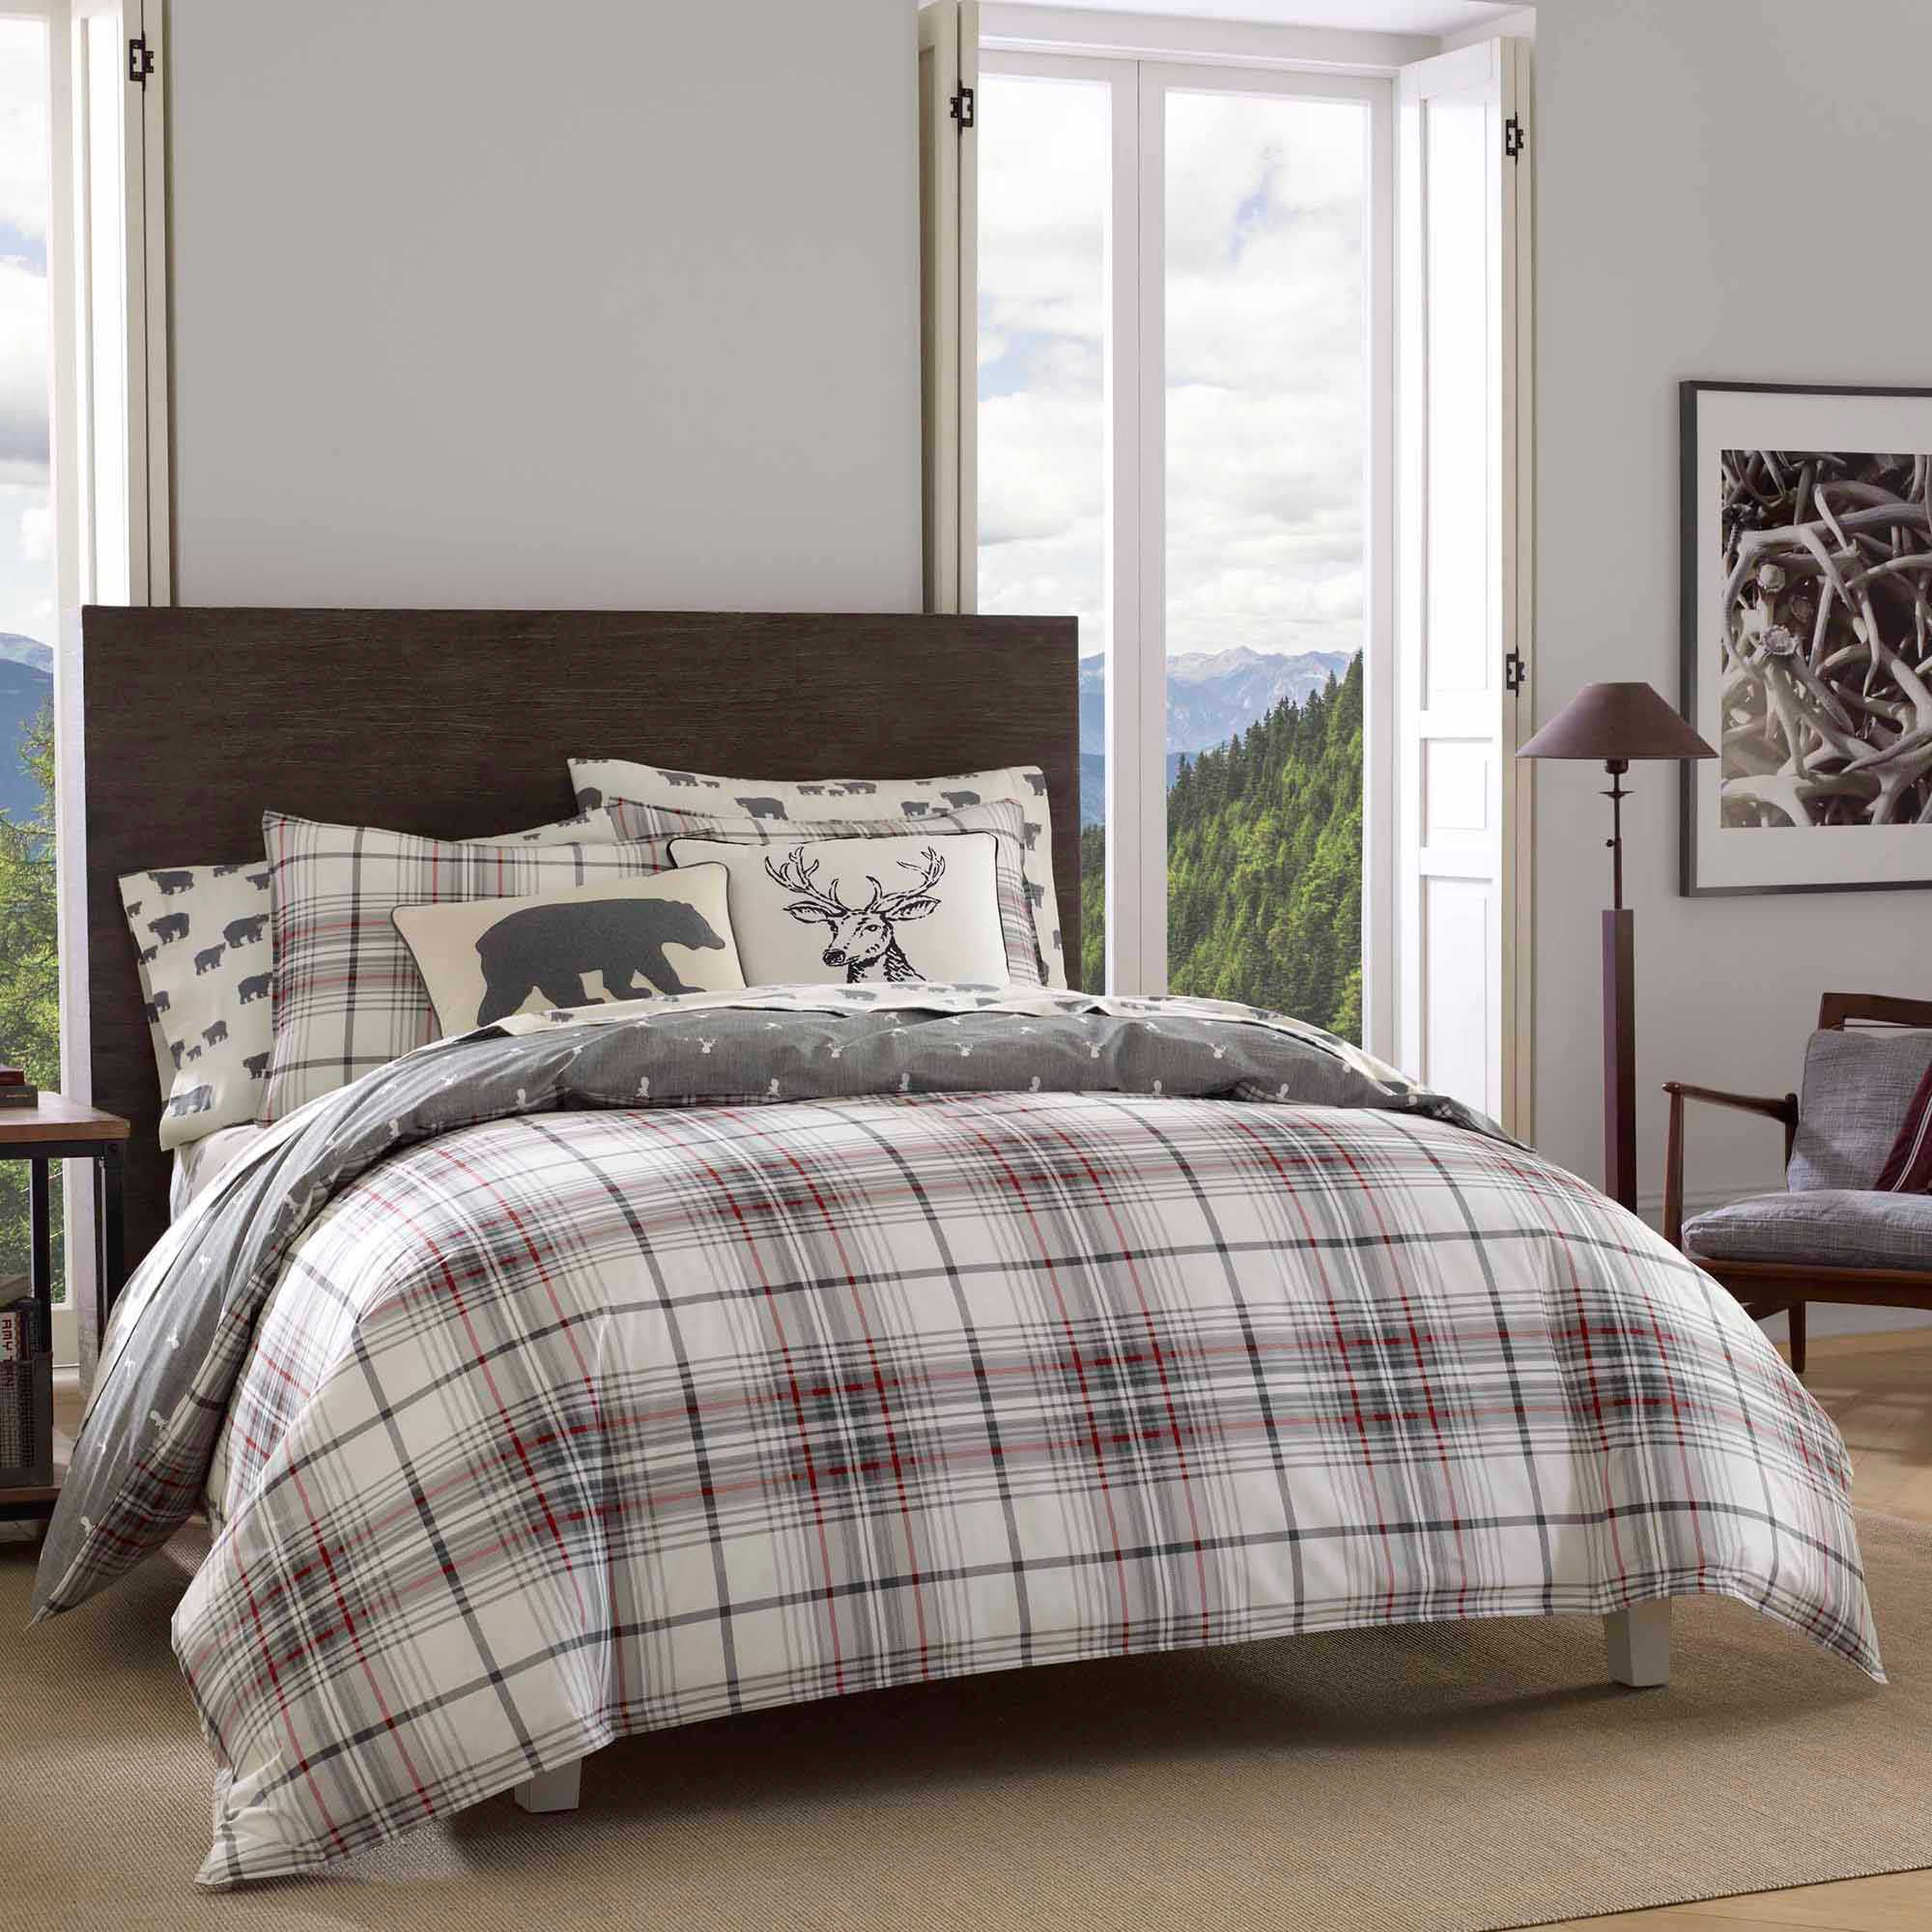 Eddie Bauer® Alder Plaid Reversible Comforter Set Plaid